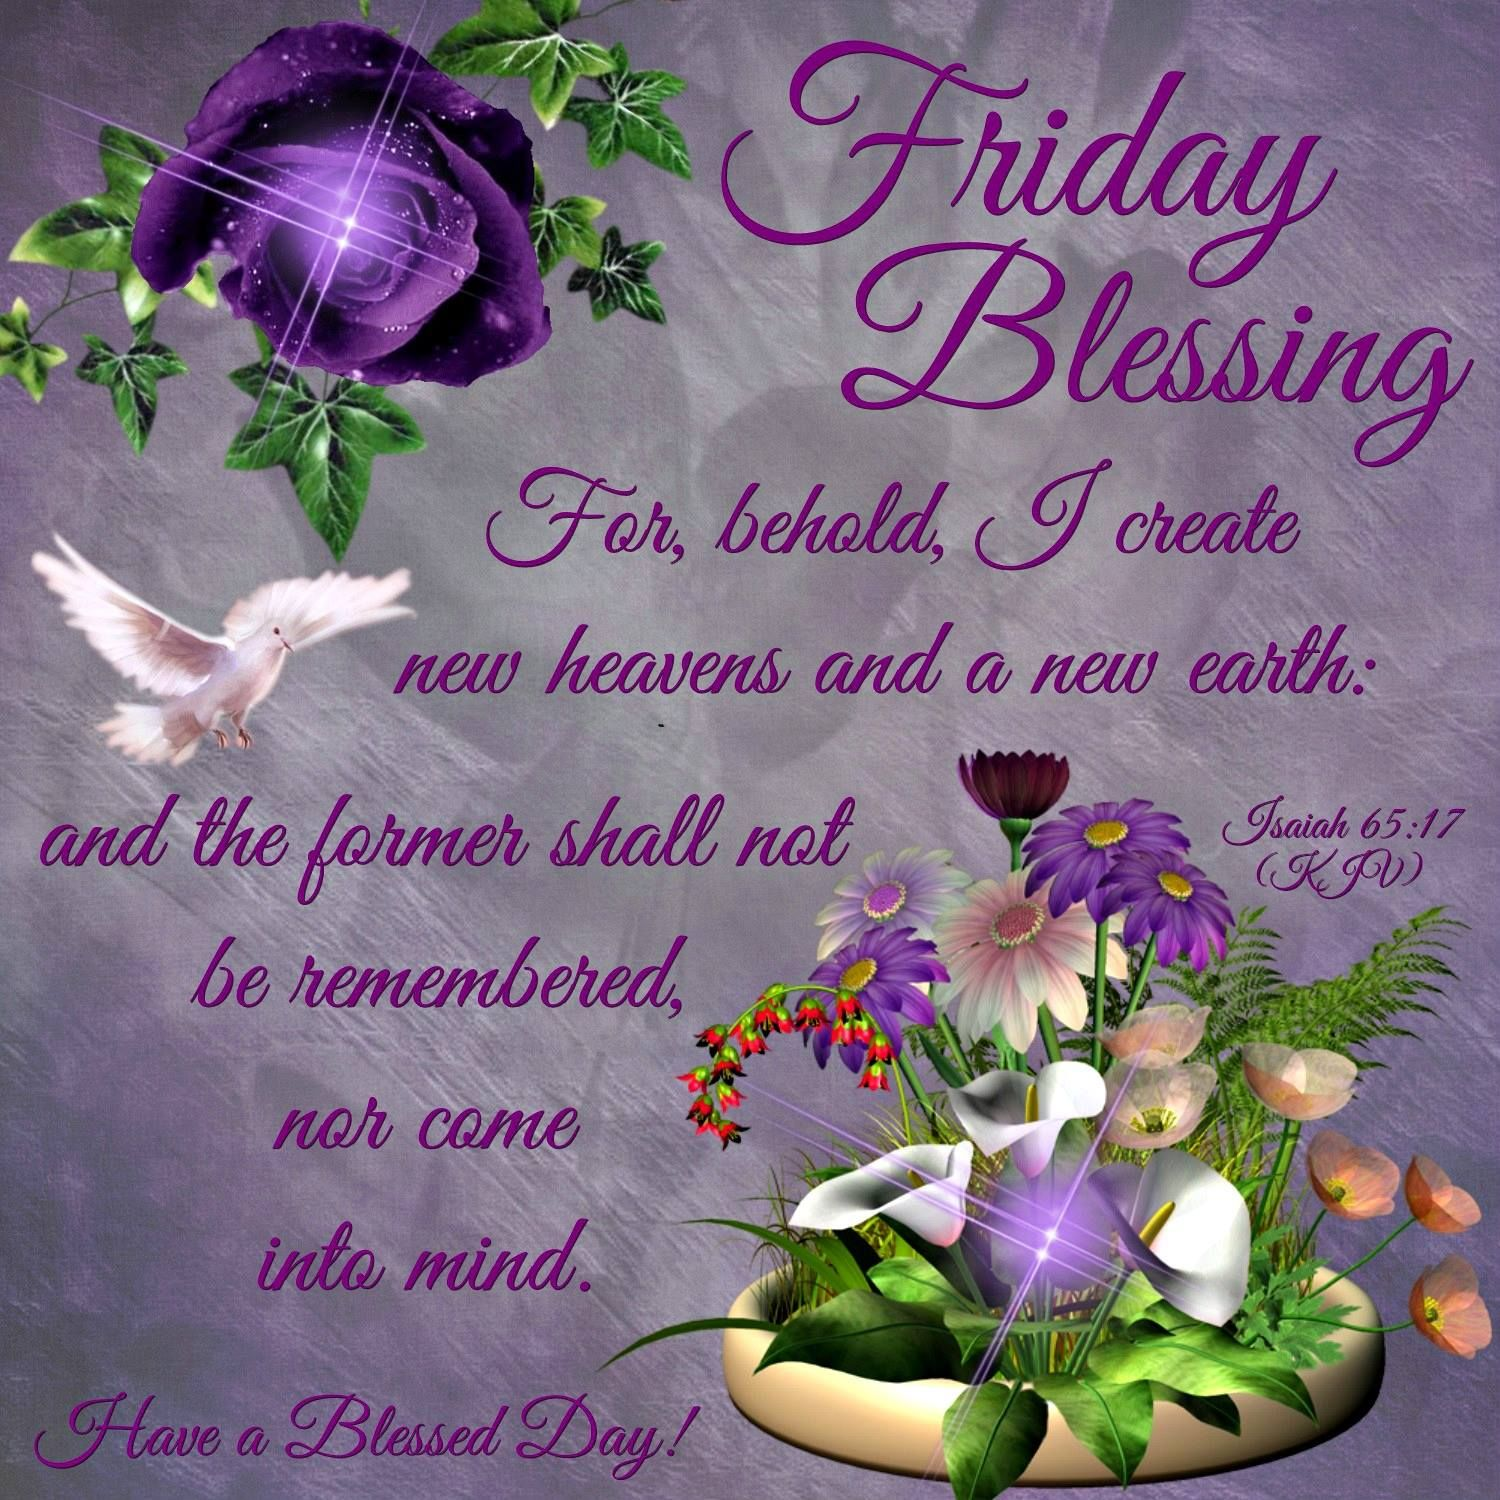 Friday Blessing Pictures Photos And Images For Facebook